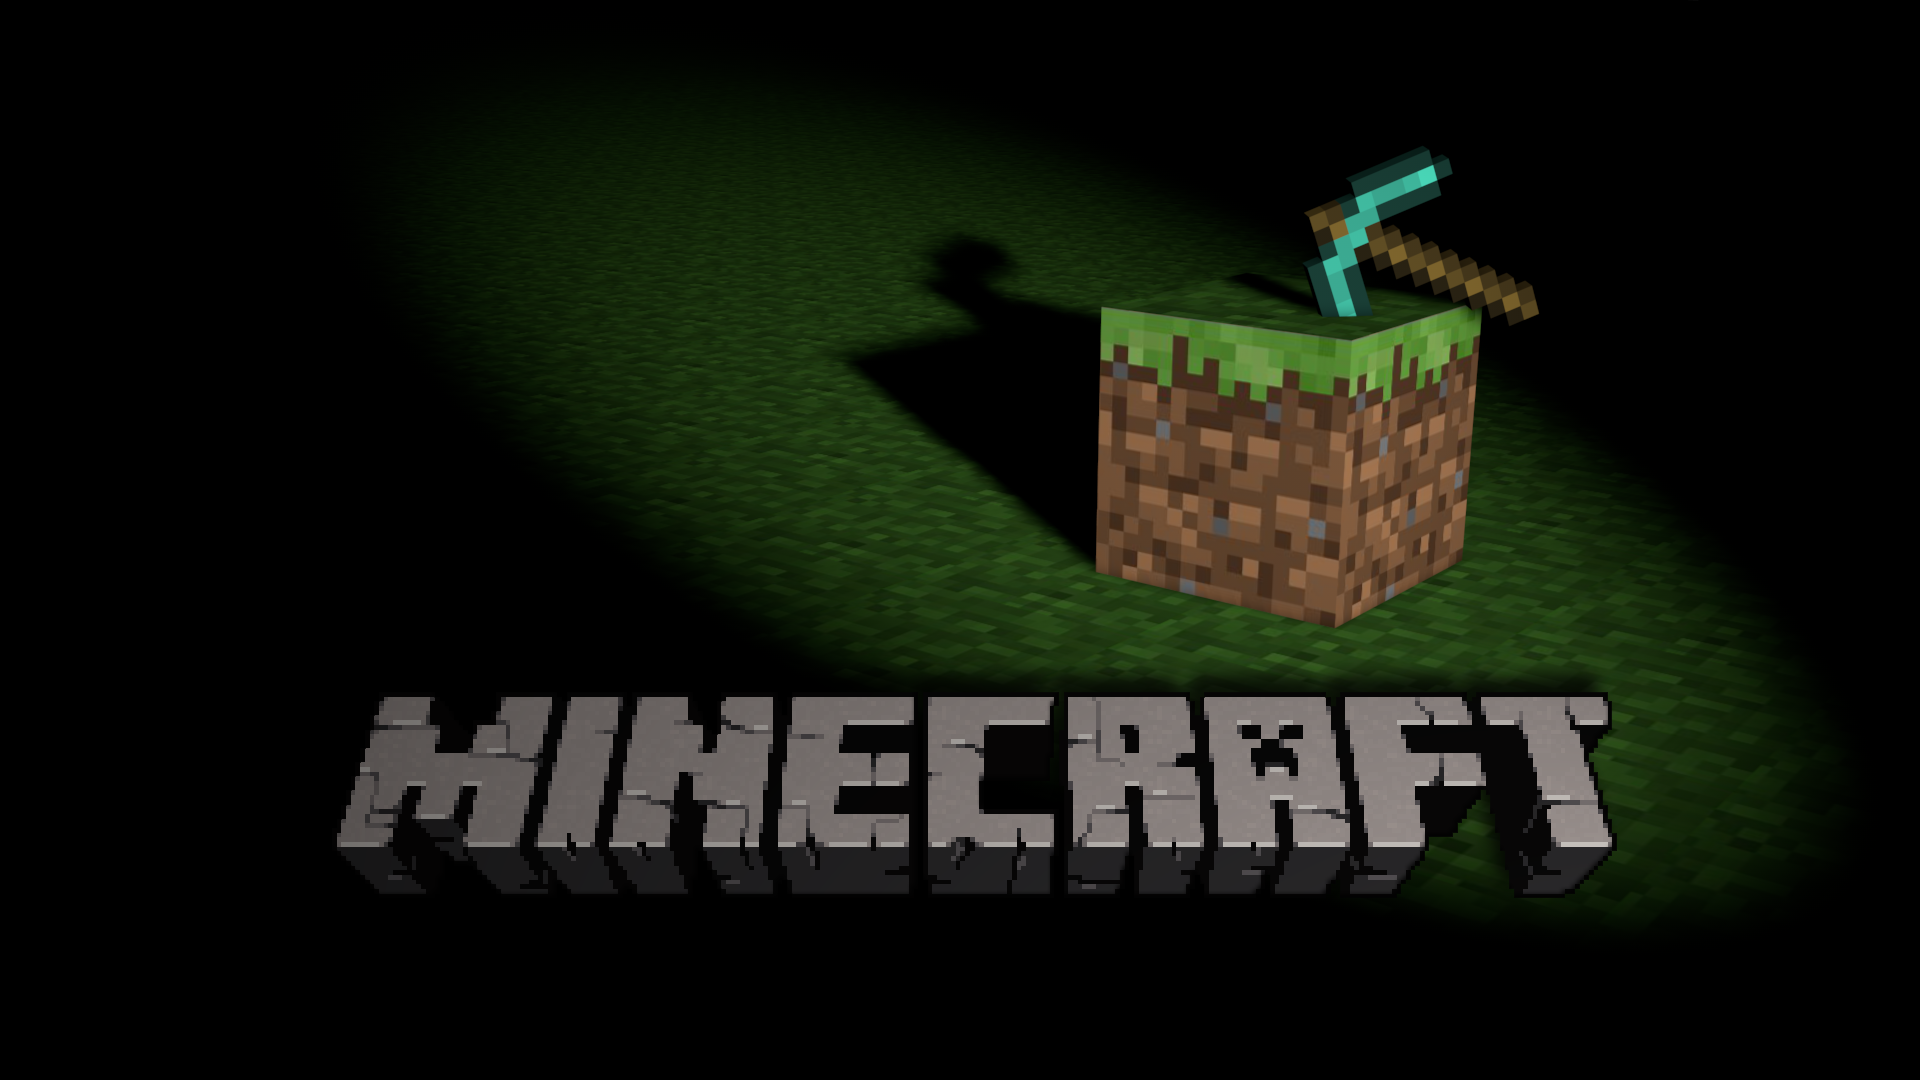 6 Cool Minecraft Backgrounds for Your Phone